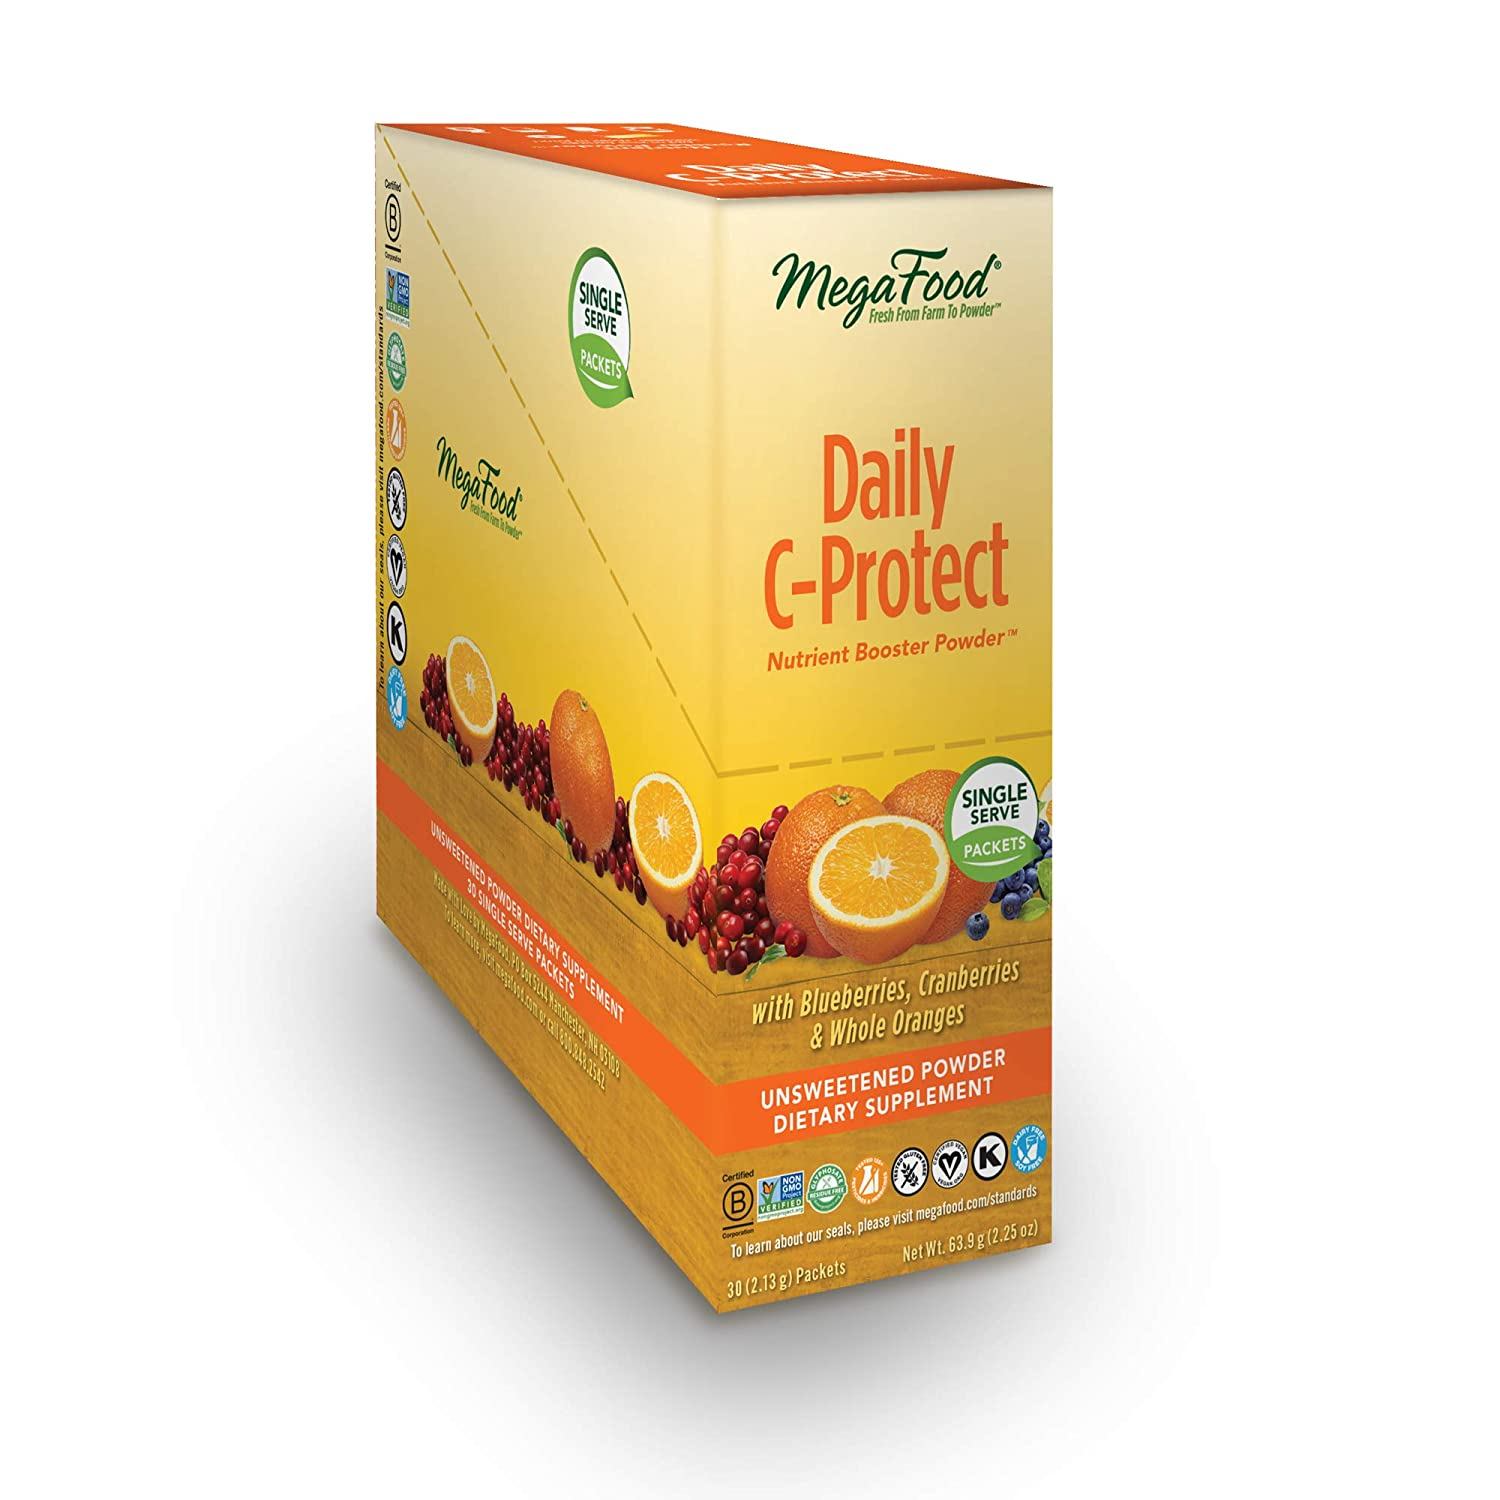 MegaFood - Daily C-Protect Booster Powder, Nourishes The Immune System Naturally, 30 Singles